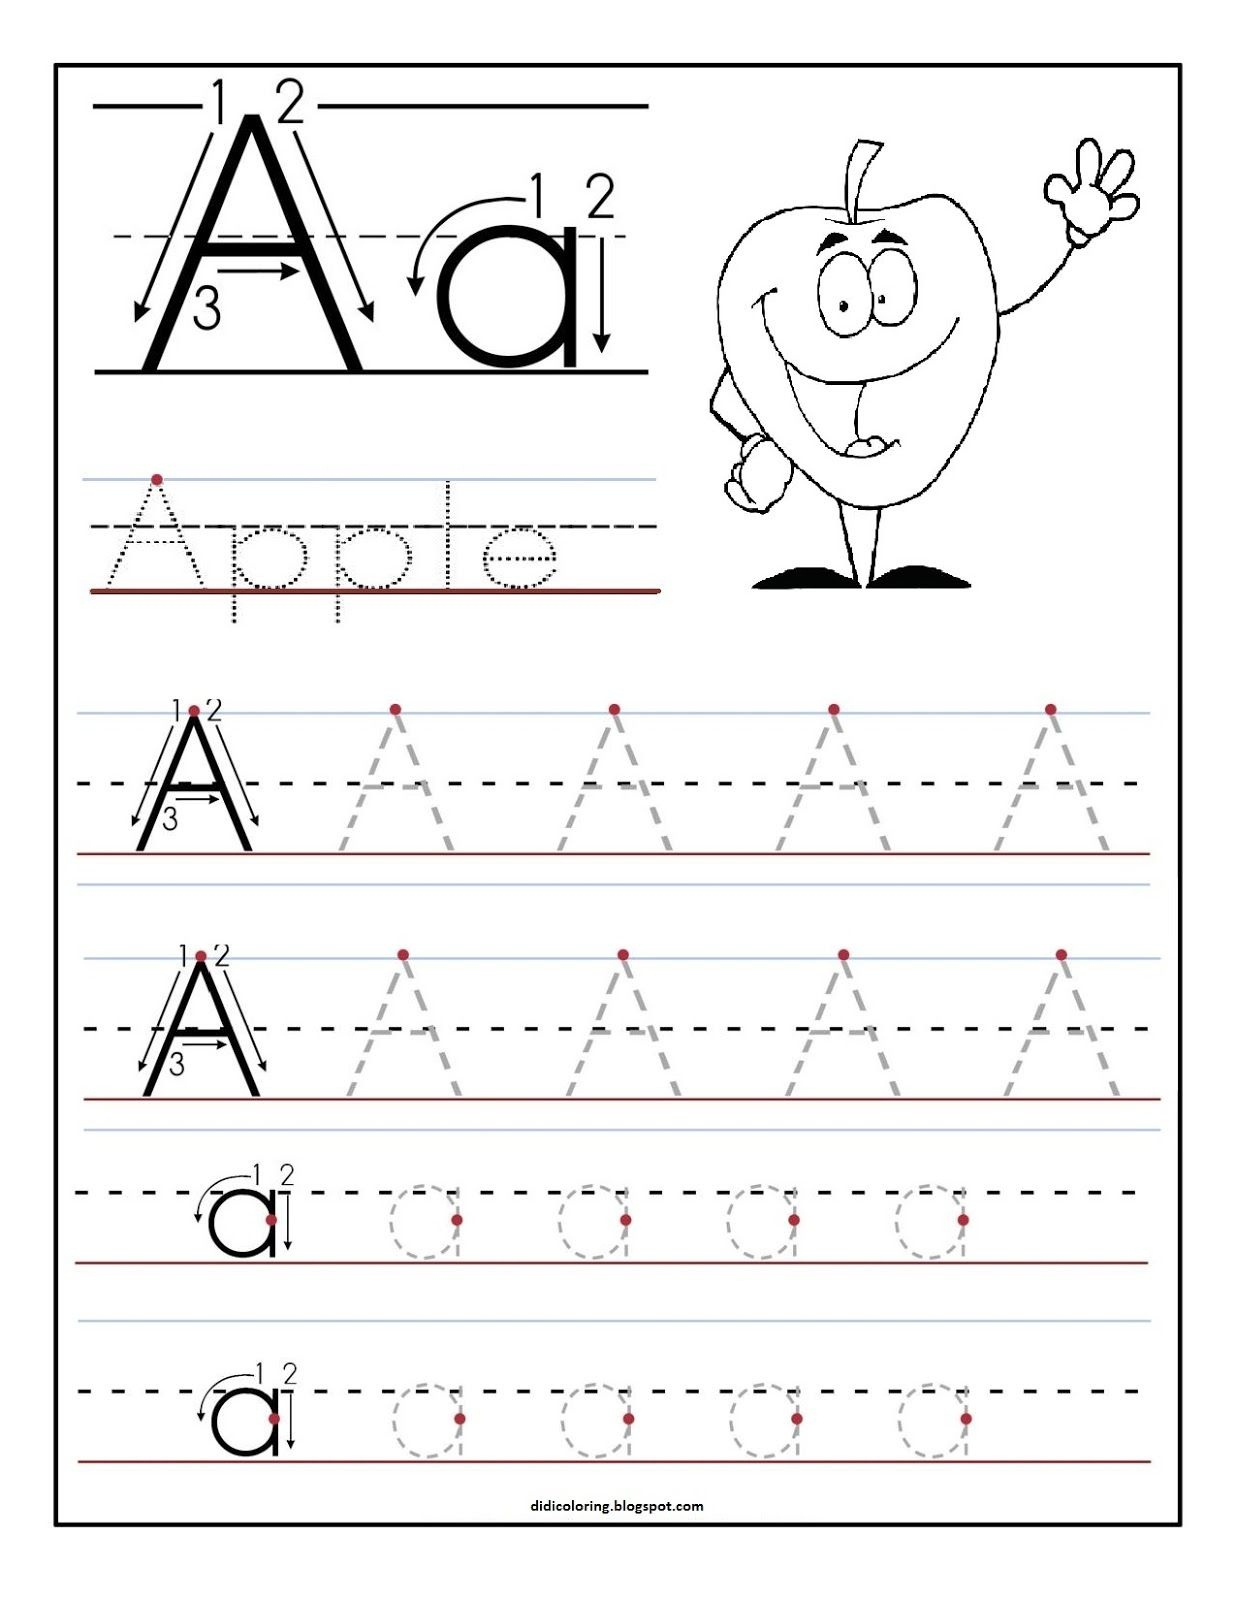 Free Printable Worksheet Letter A For Your Child To Learn And Write - Learning To Write Letters Free Printables